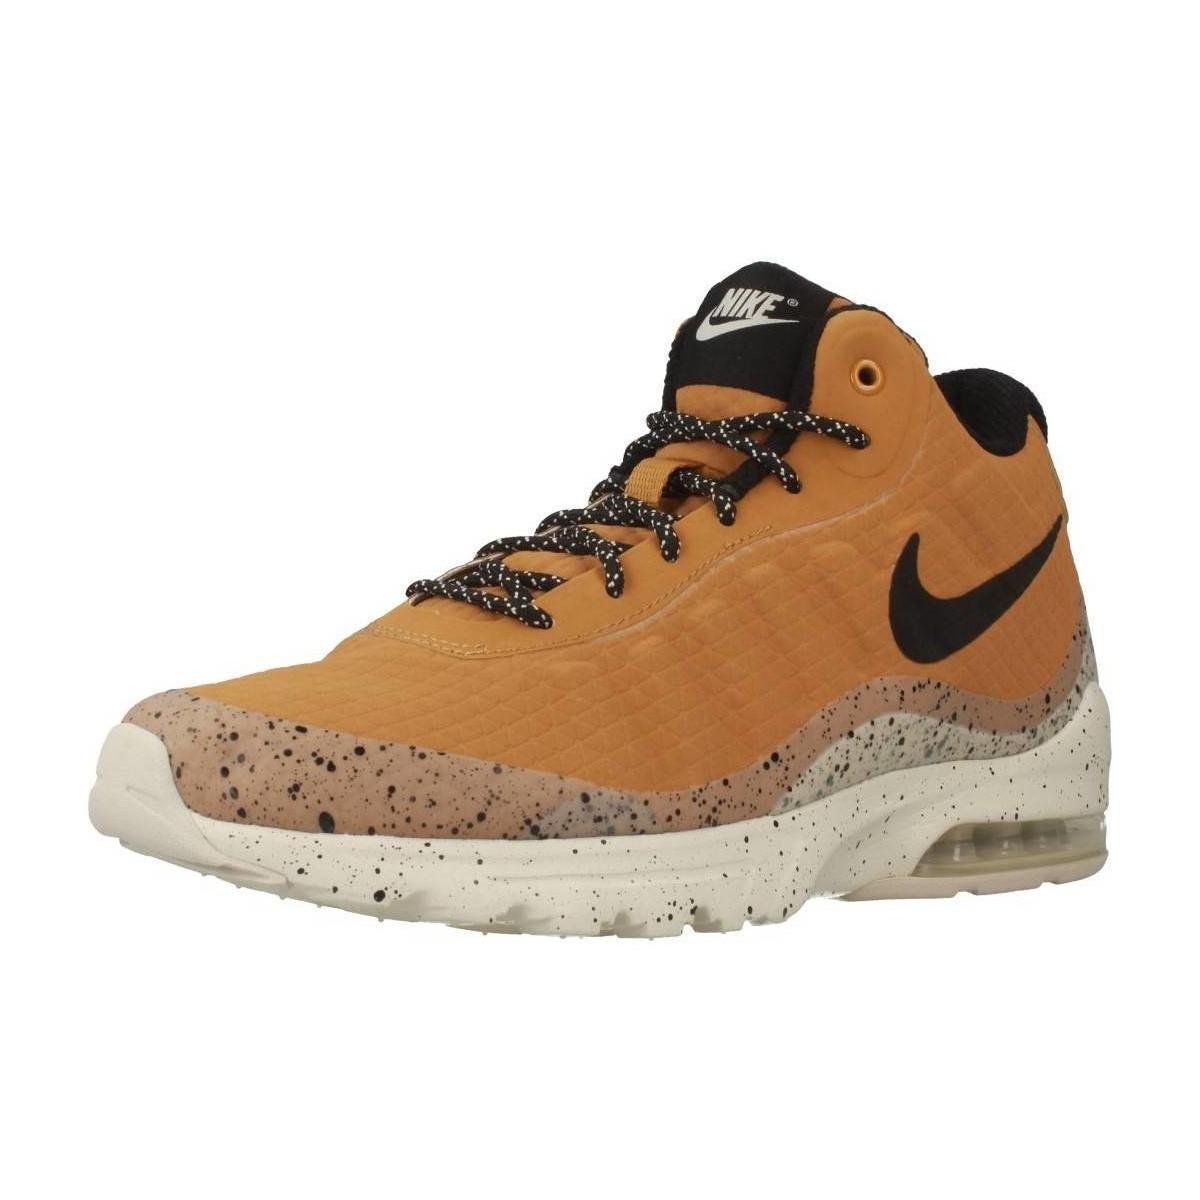 c455075f7166 ... cheapest nike air max invigor mid mens shoes high top trainers in beige  in 29faa 88635 ...